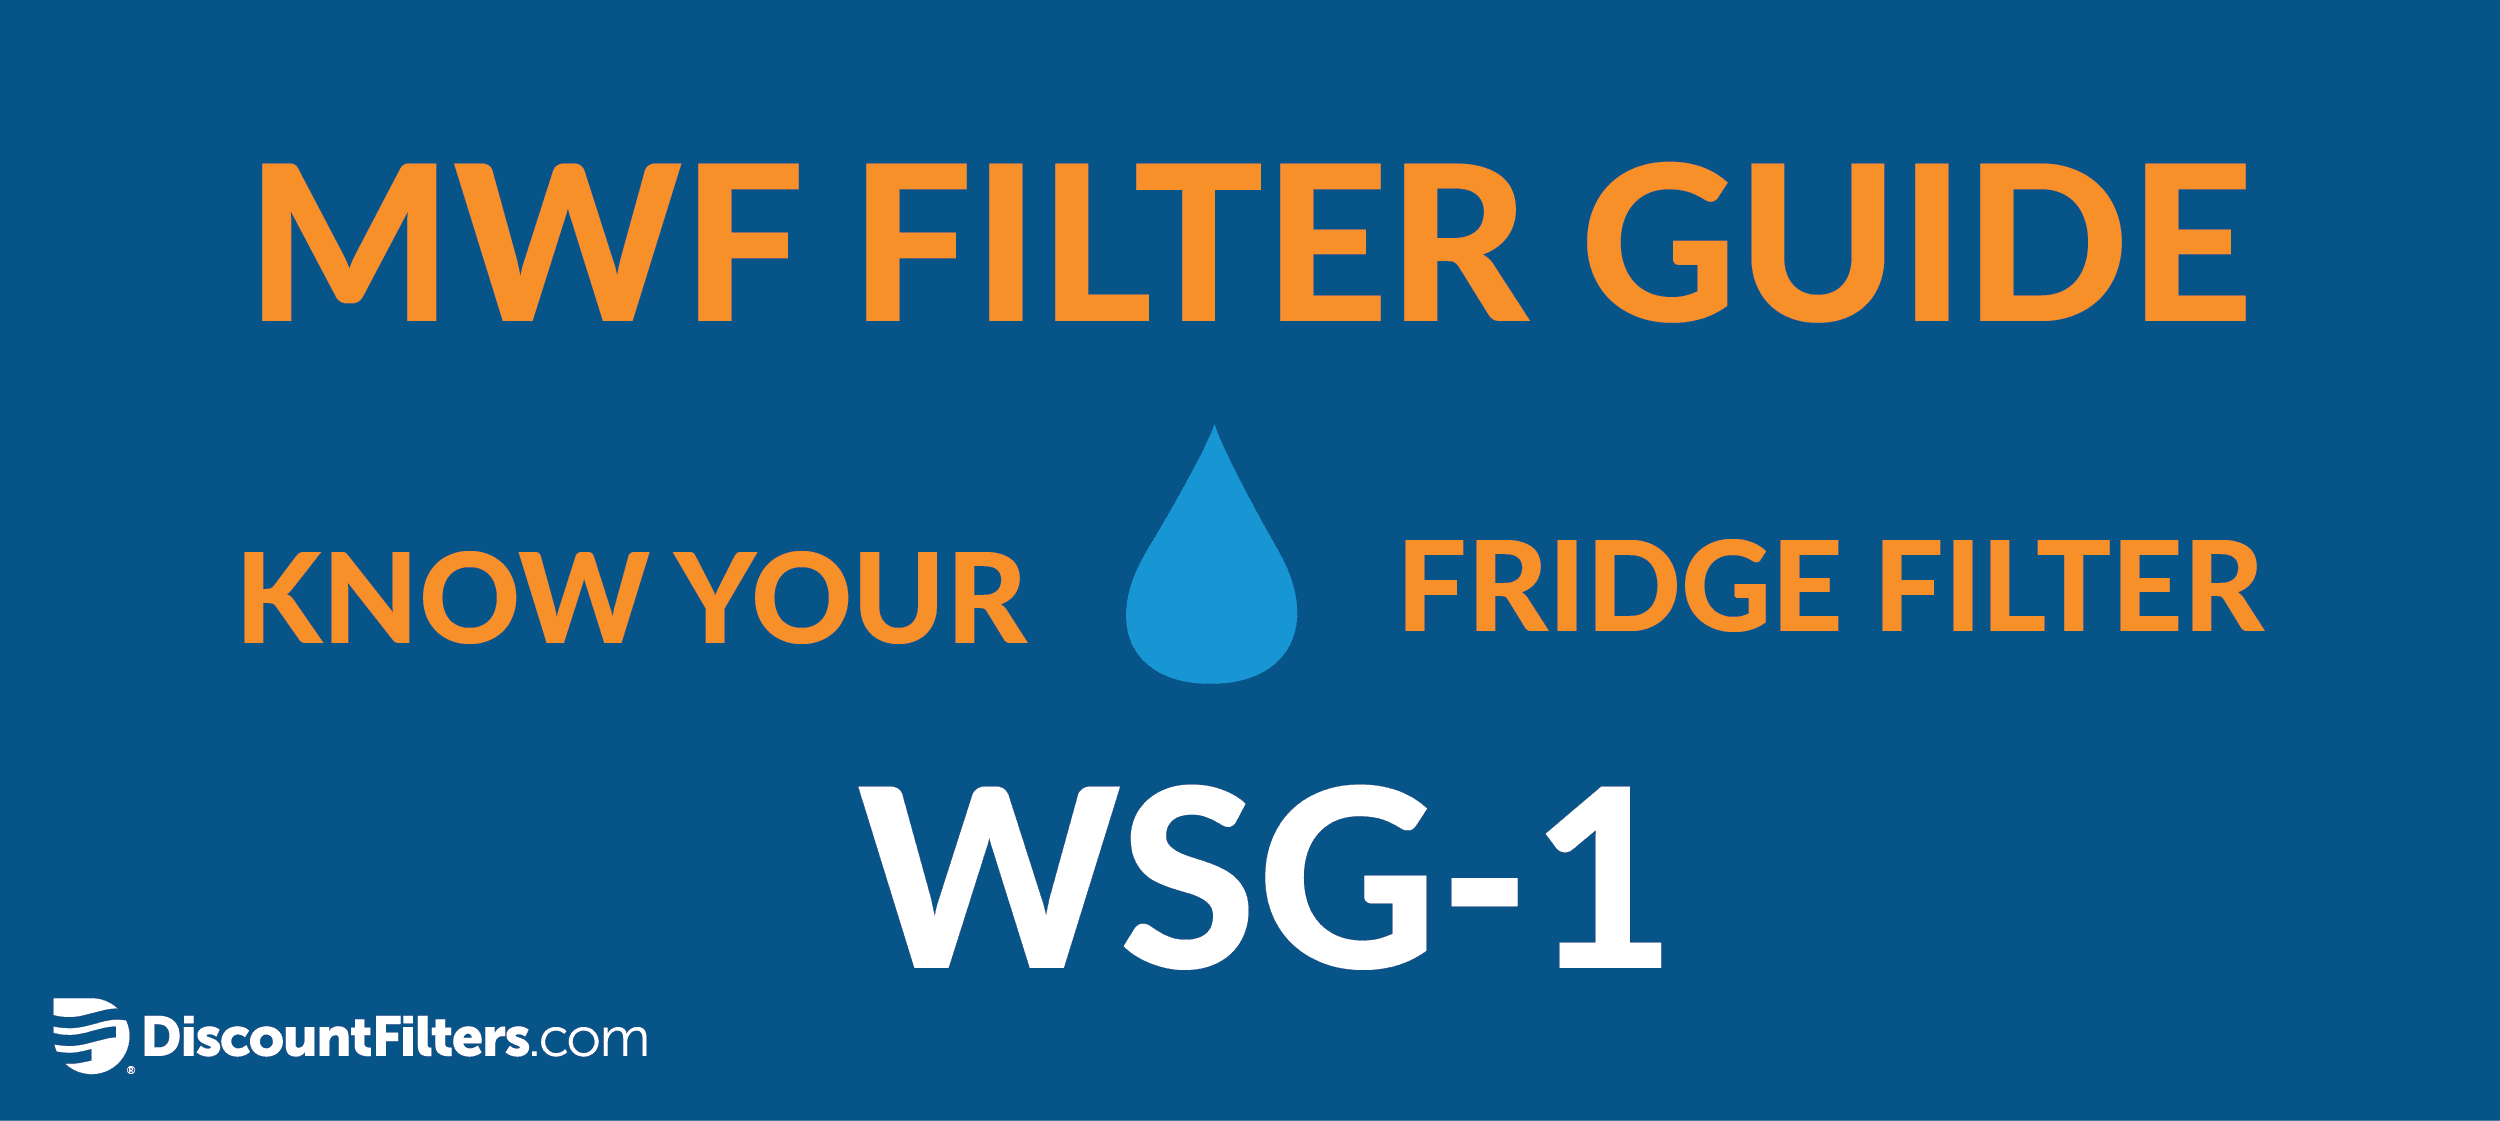 mwf filter replacement guide wsg-1